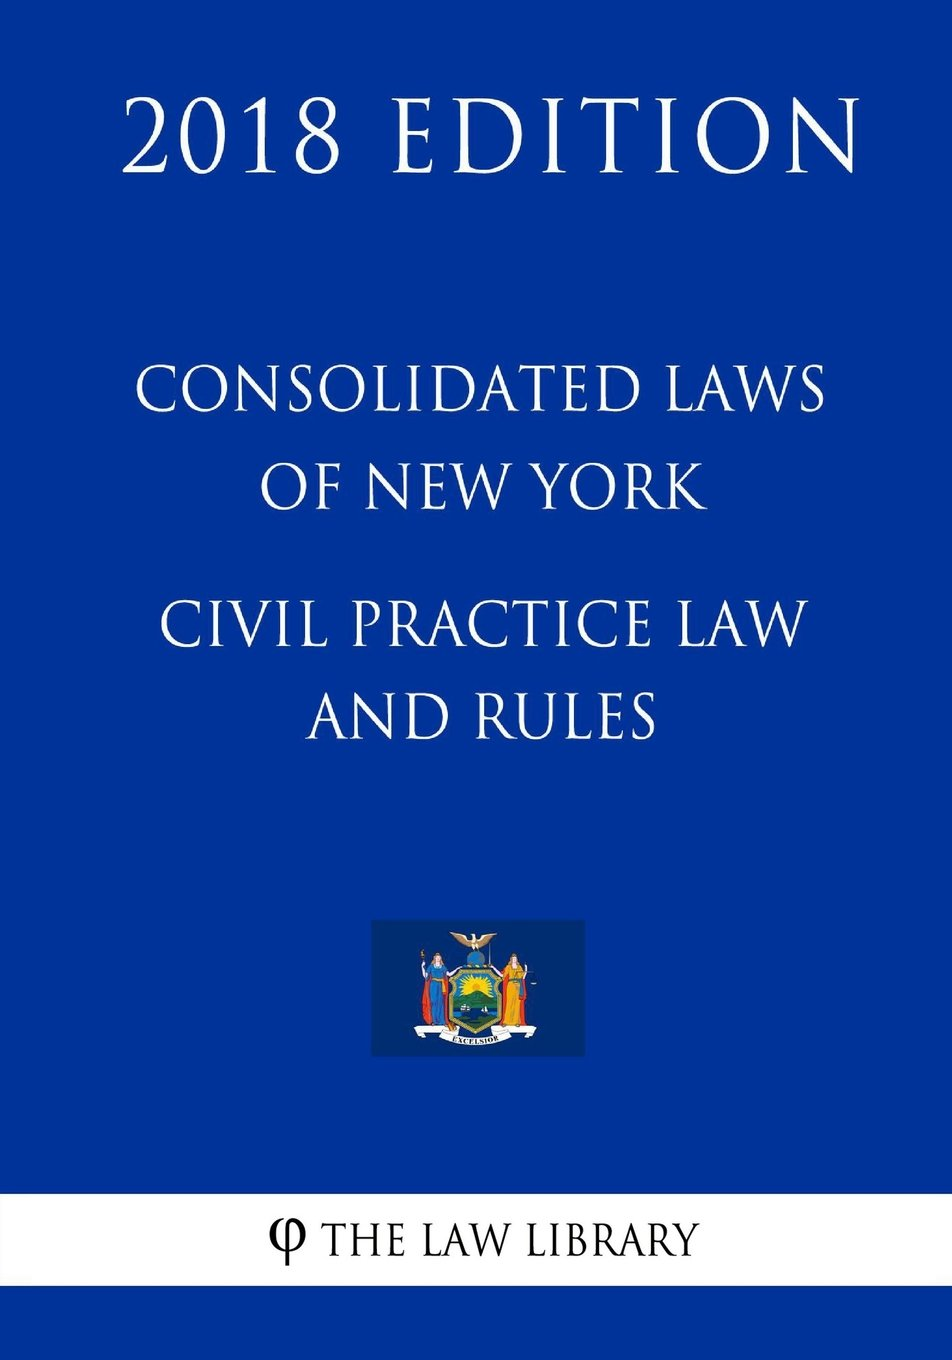 Consolidated Laws of New York - Civil Practice Law and Rules